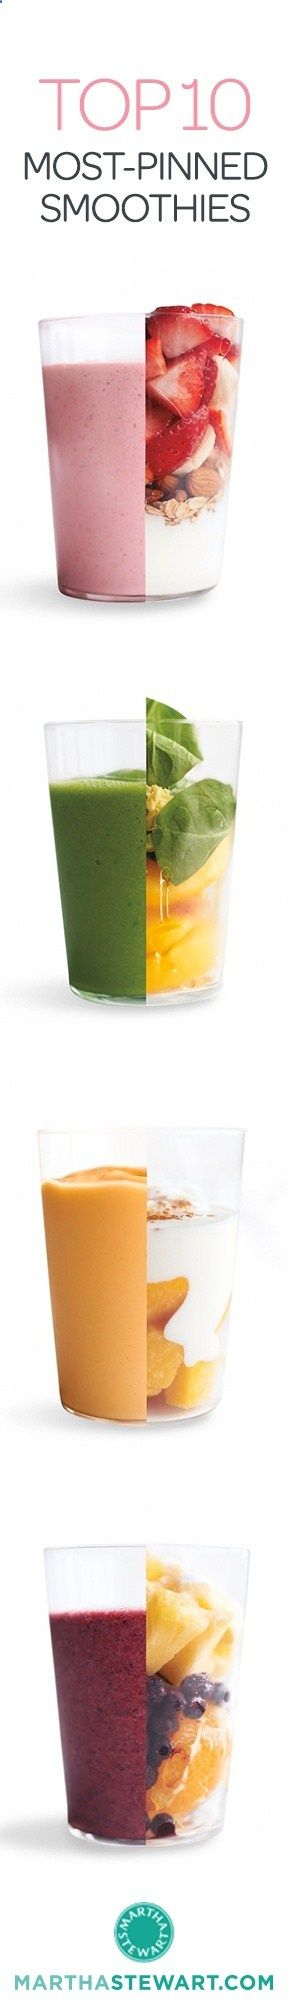 10 Delicious smoothies to start your morning right. #Yum #Breakfast #Refreshing…